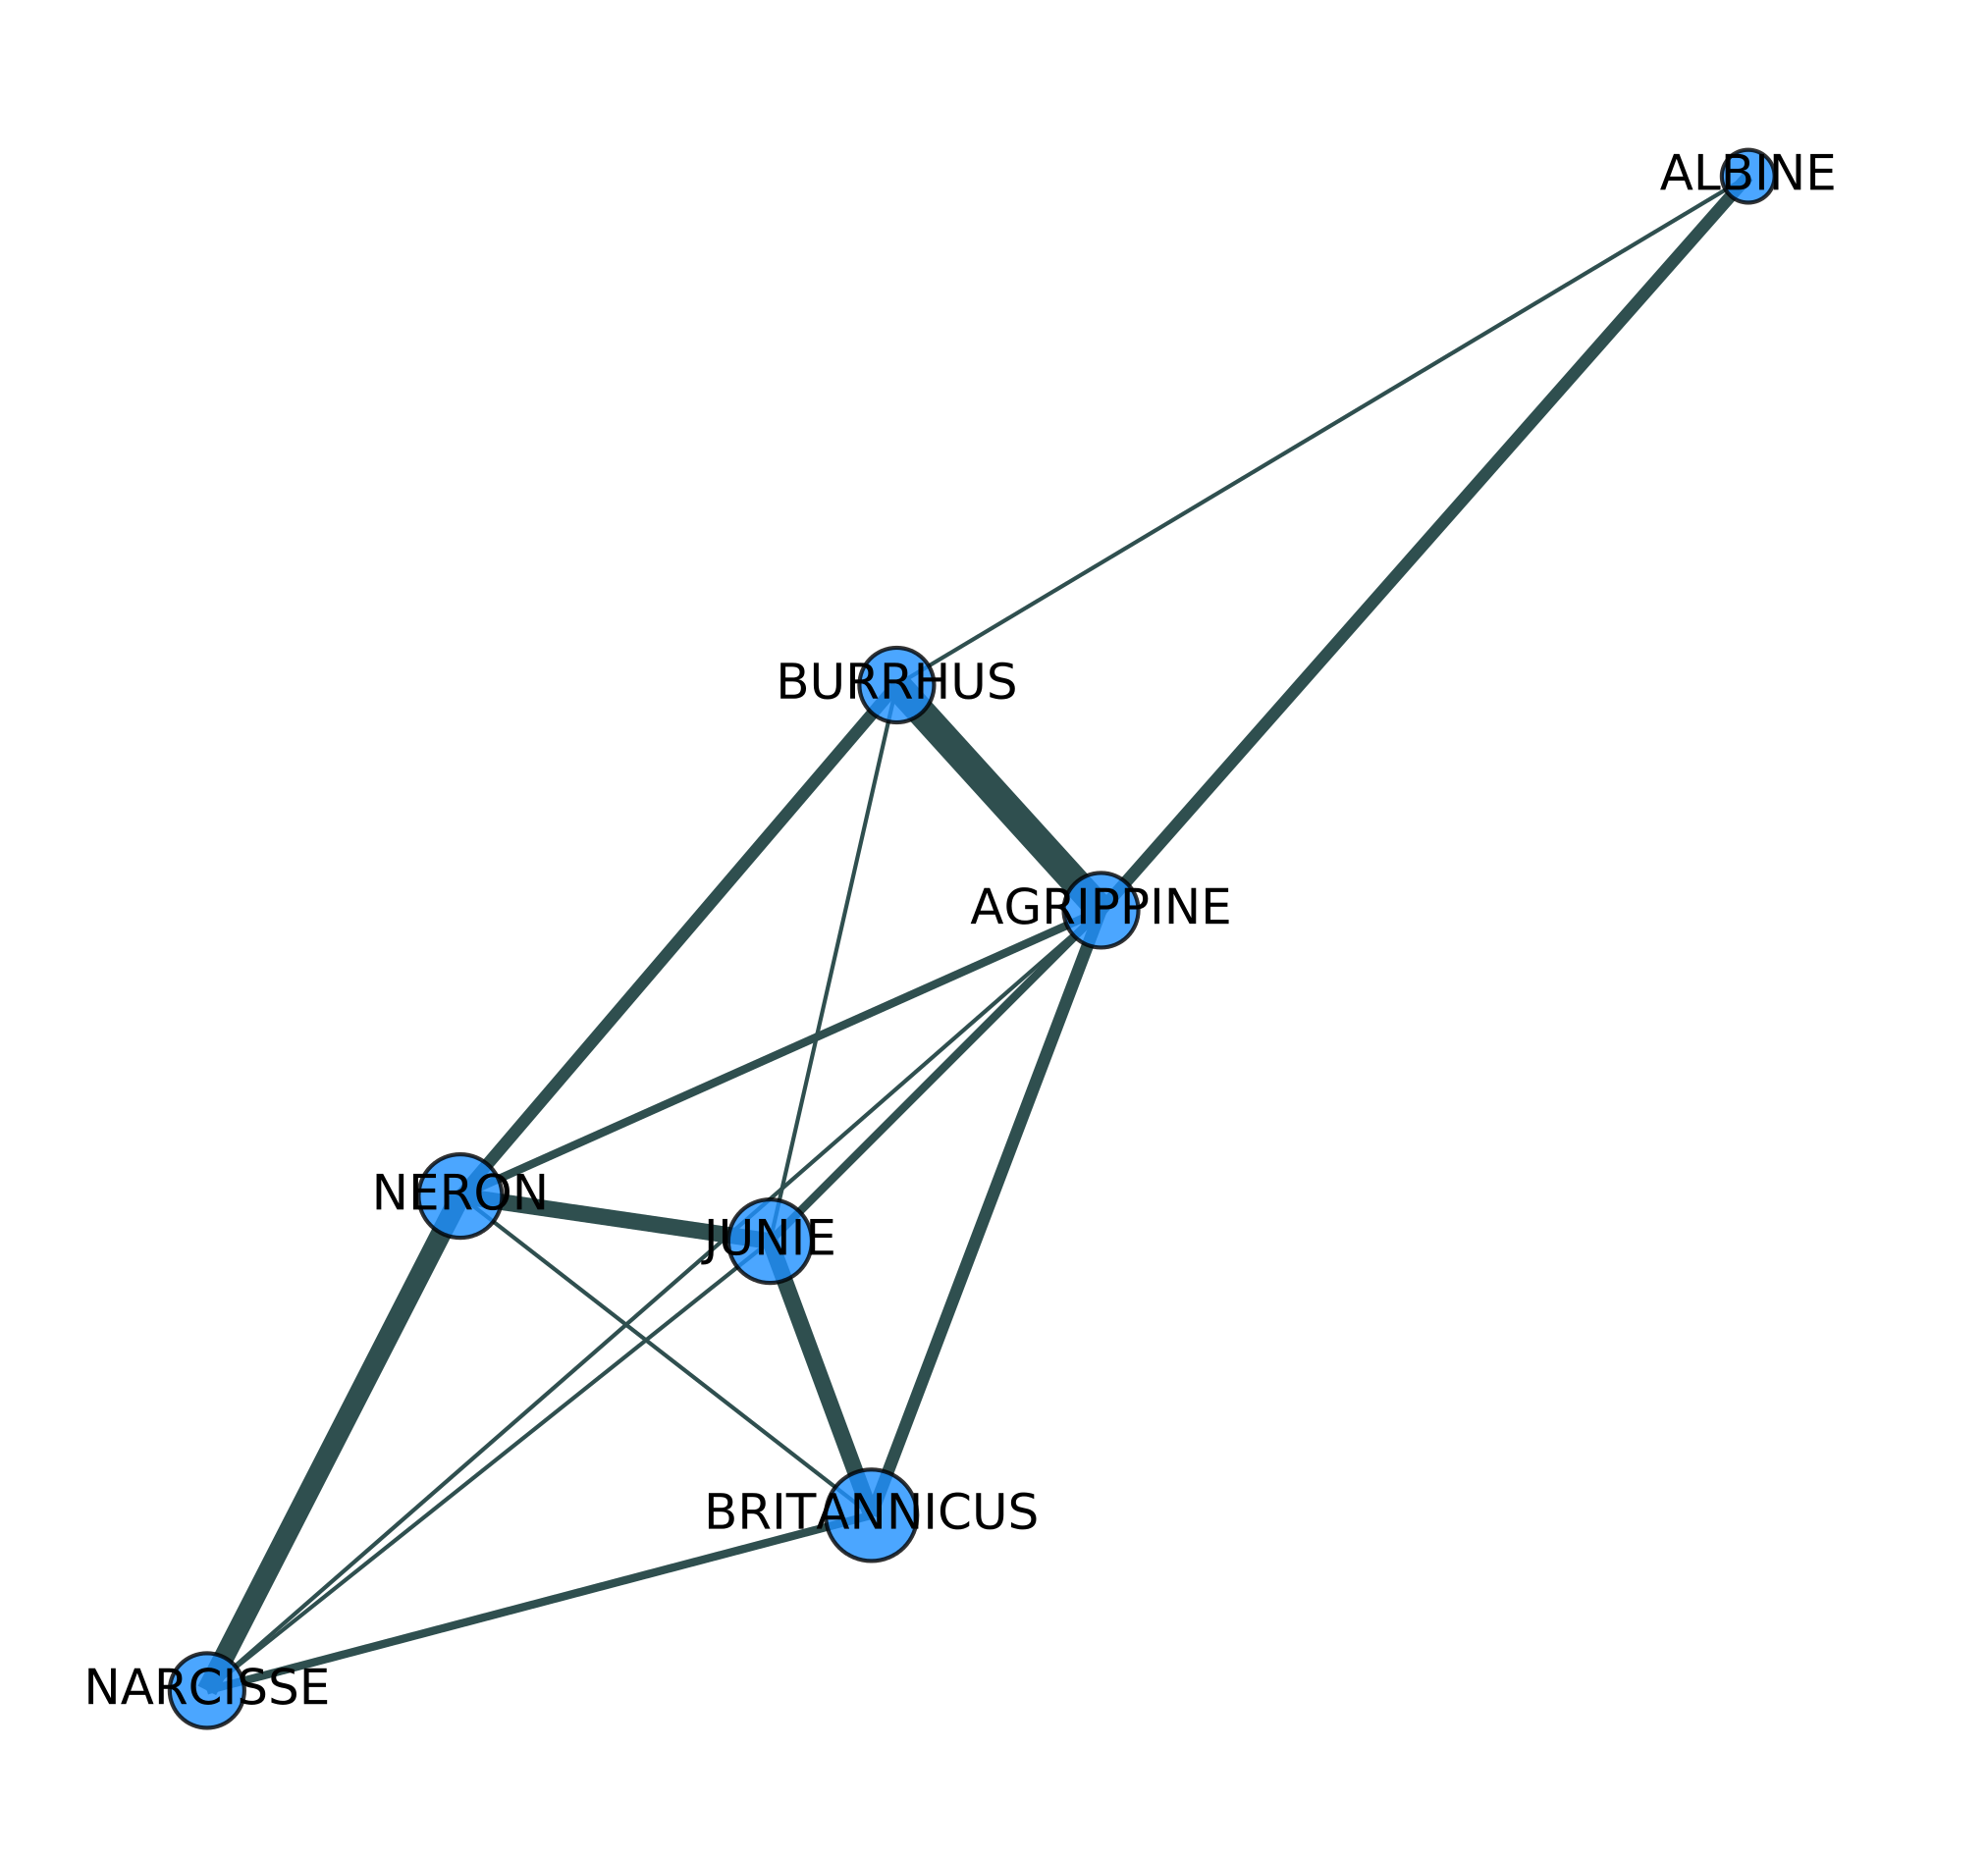 Character network based on number of words spoken in mutual presence (represented by the thickness of the lines), for Jean Racine's tragedy Britannicus (1669)